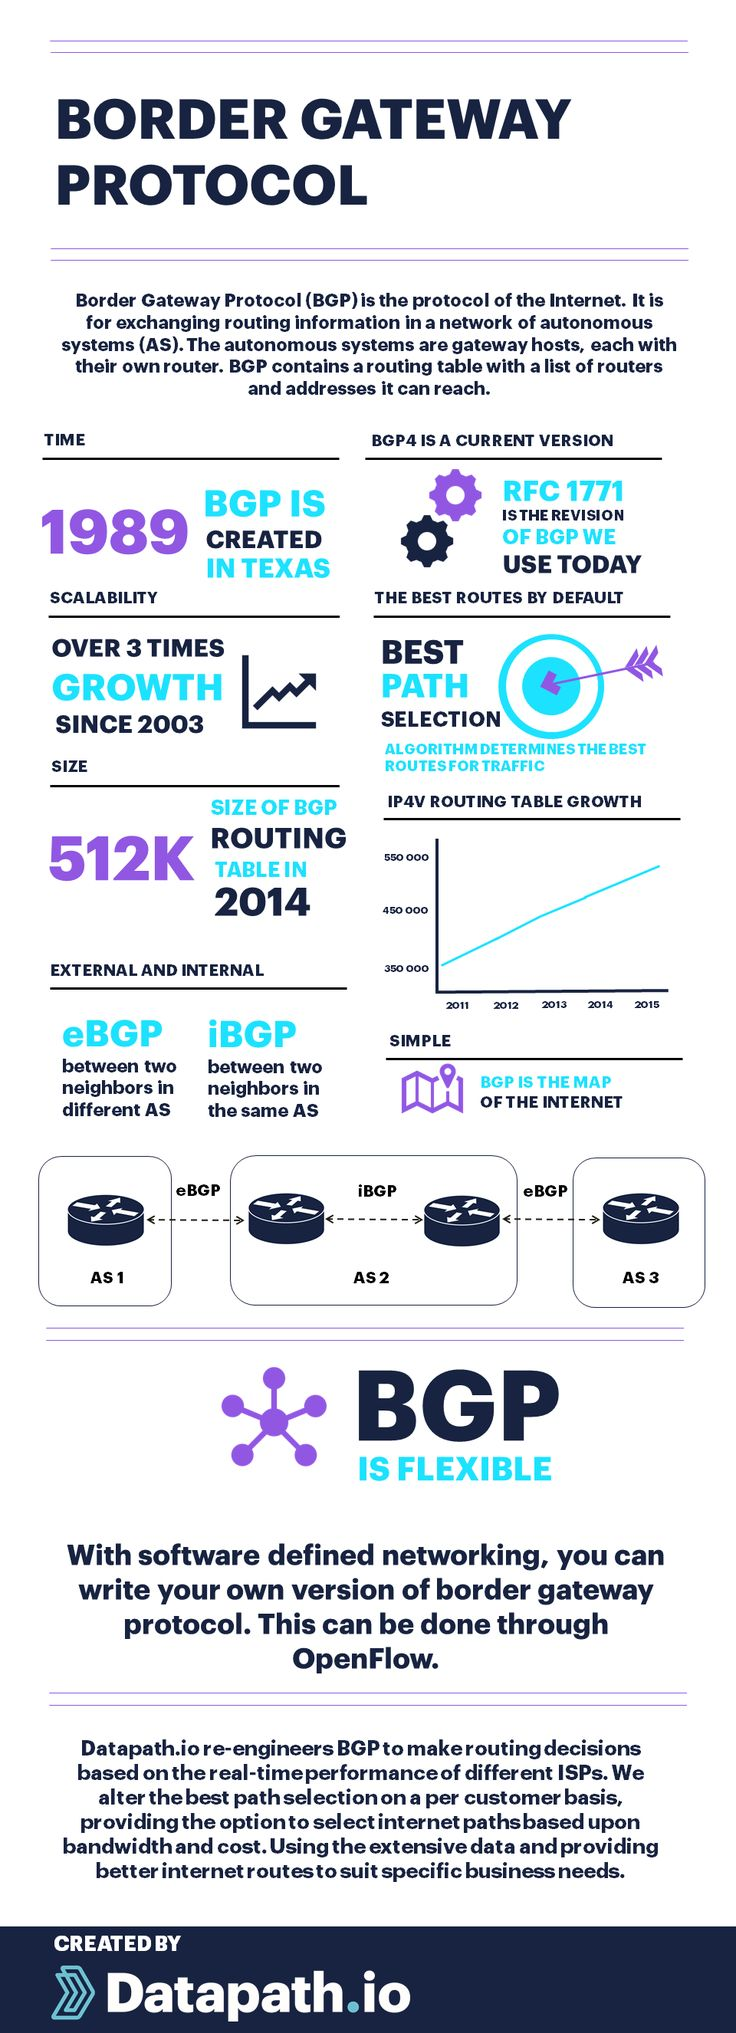 BGP Infographic: Border Gateway Protocol